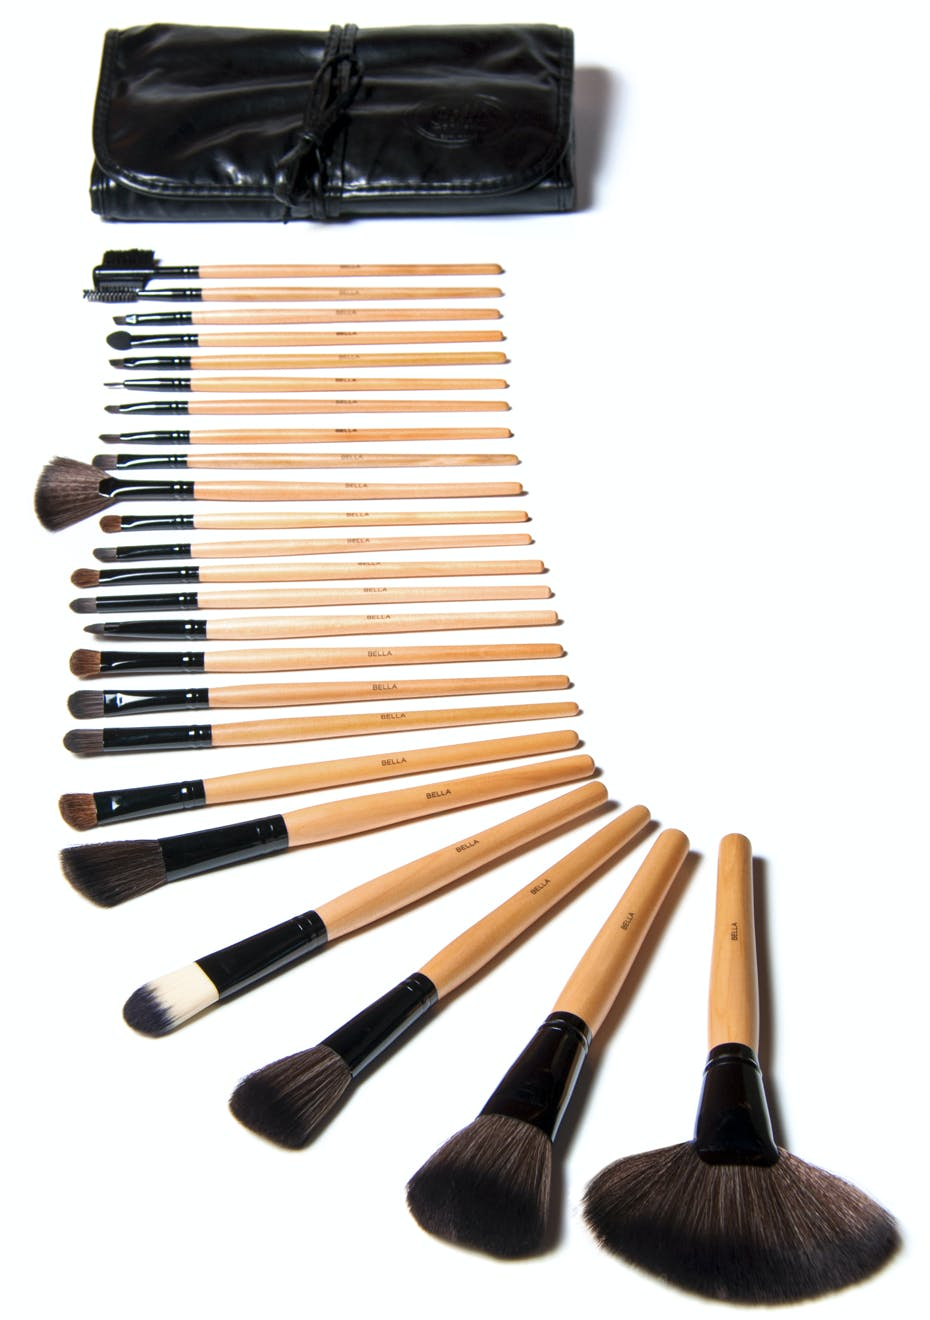 Revlon makeup brush set nz